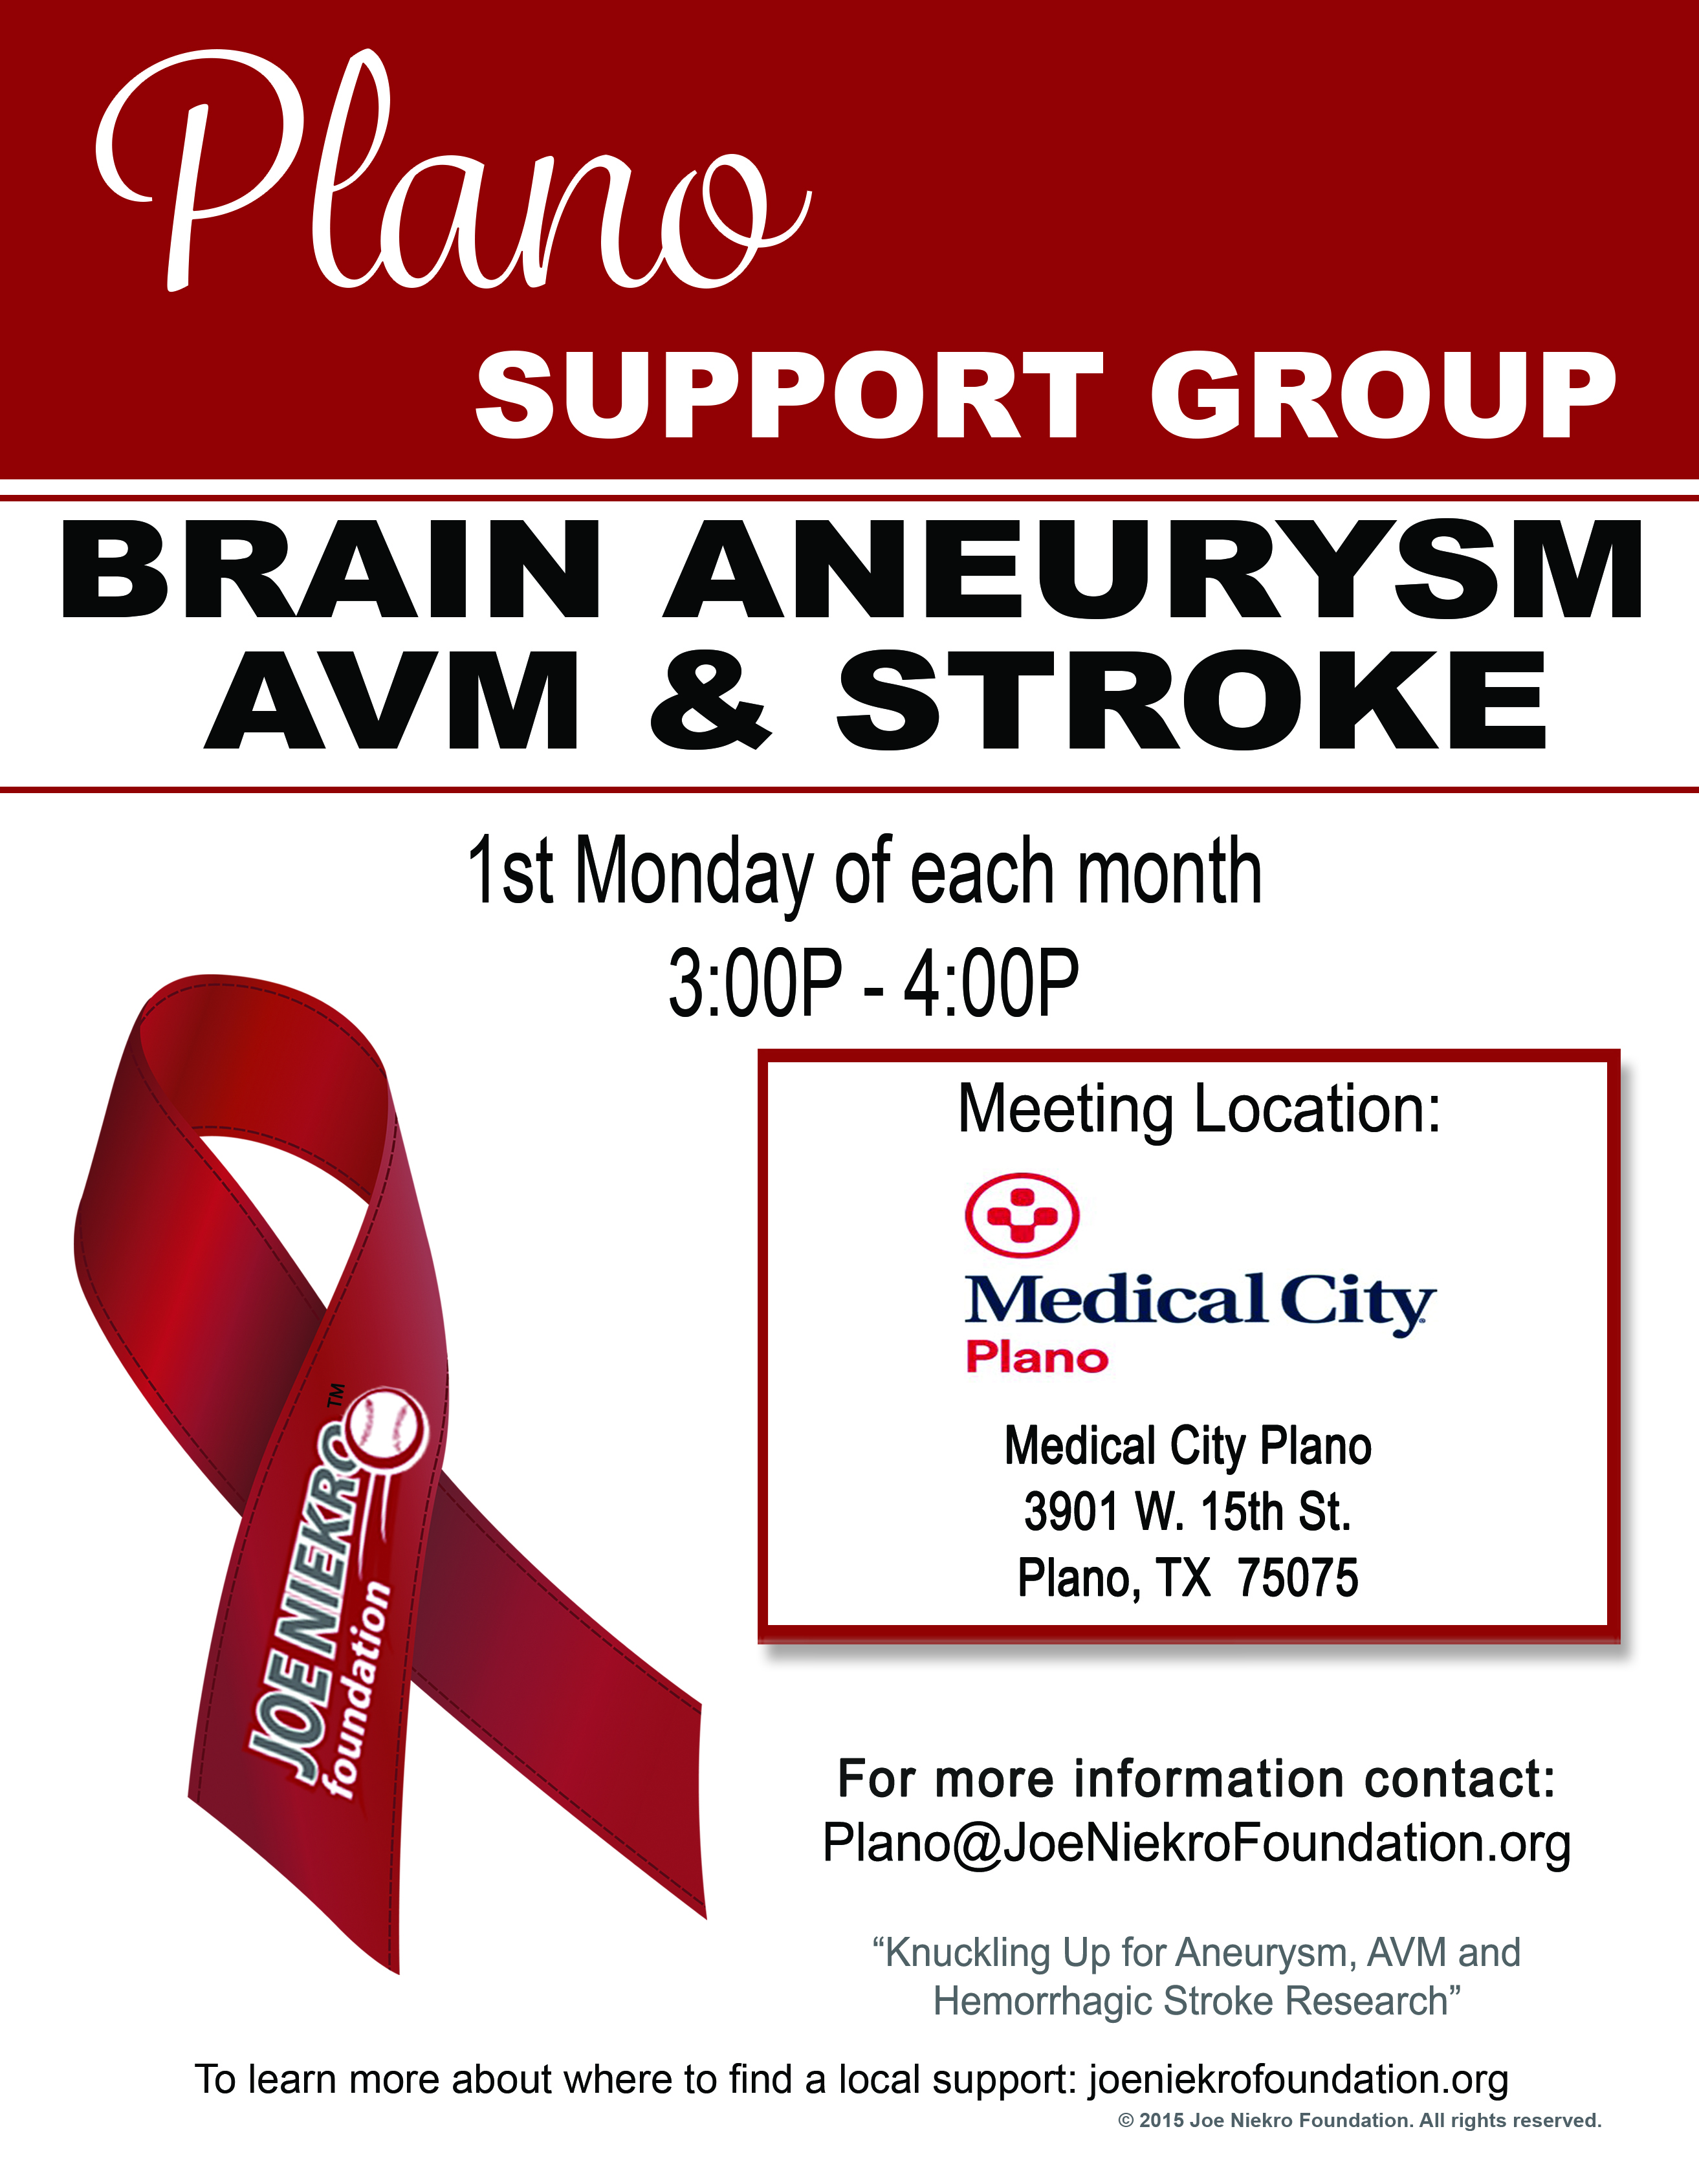 http://www.joeniekrofoundation.com/patient-caregiver-support/support-groups/locations/attachment/plano-poster/